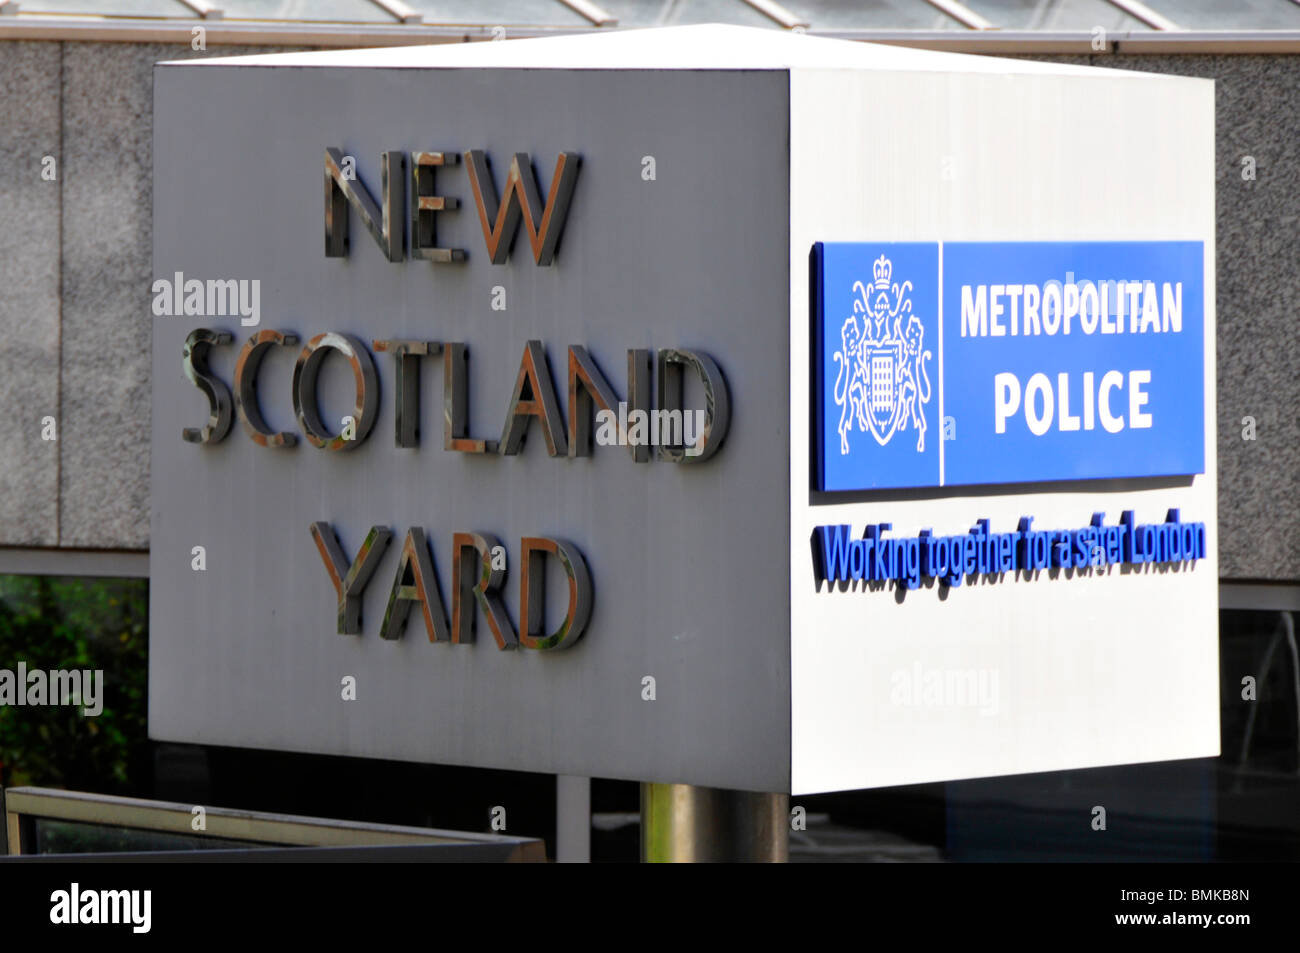 Sign for New Scotland Yard HQ of the Metropolitan Police - Stock Image